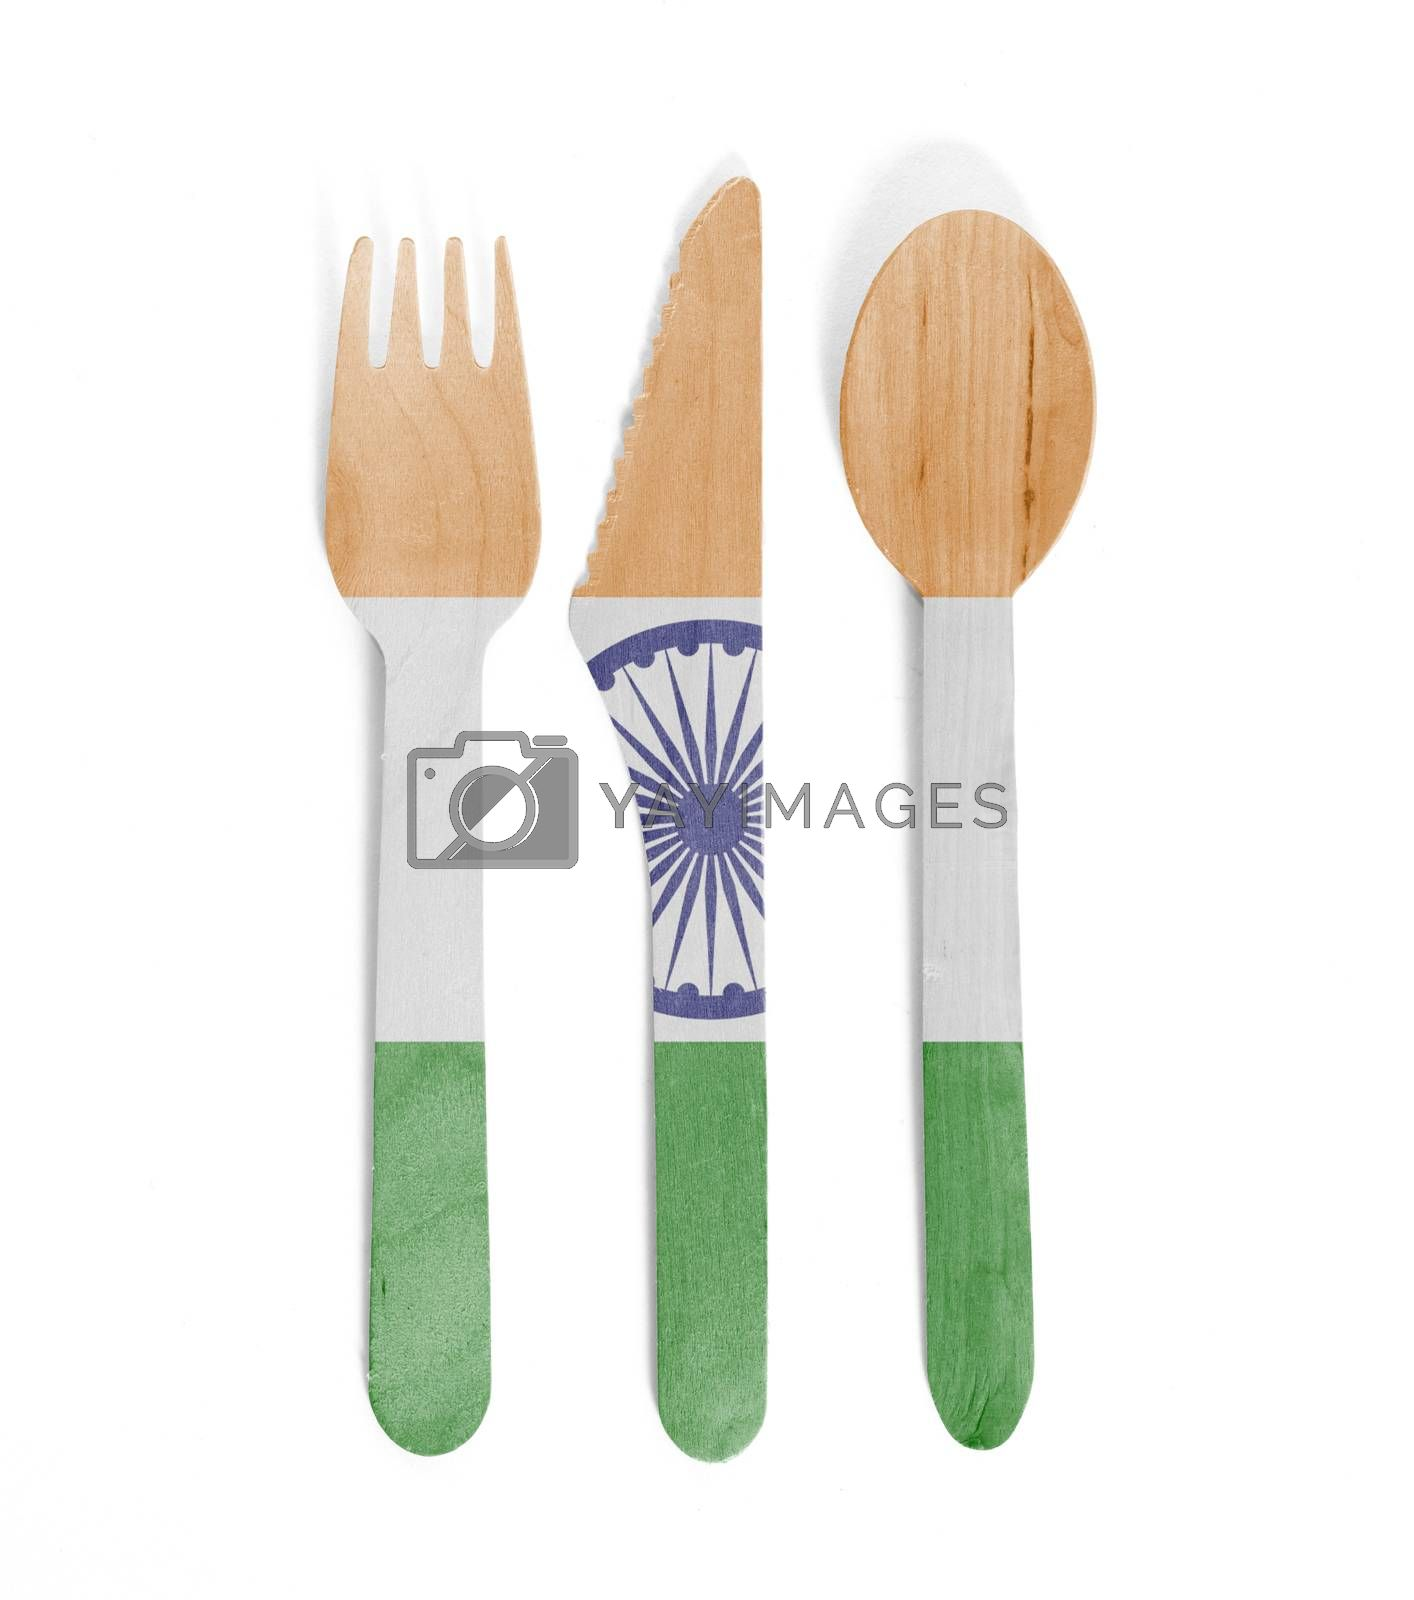 Eco friendly wooden cutlery - Plastic free concept - Isolated - Flag of India